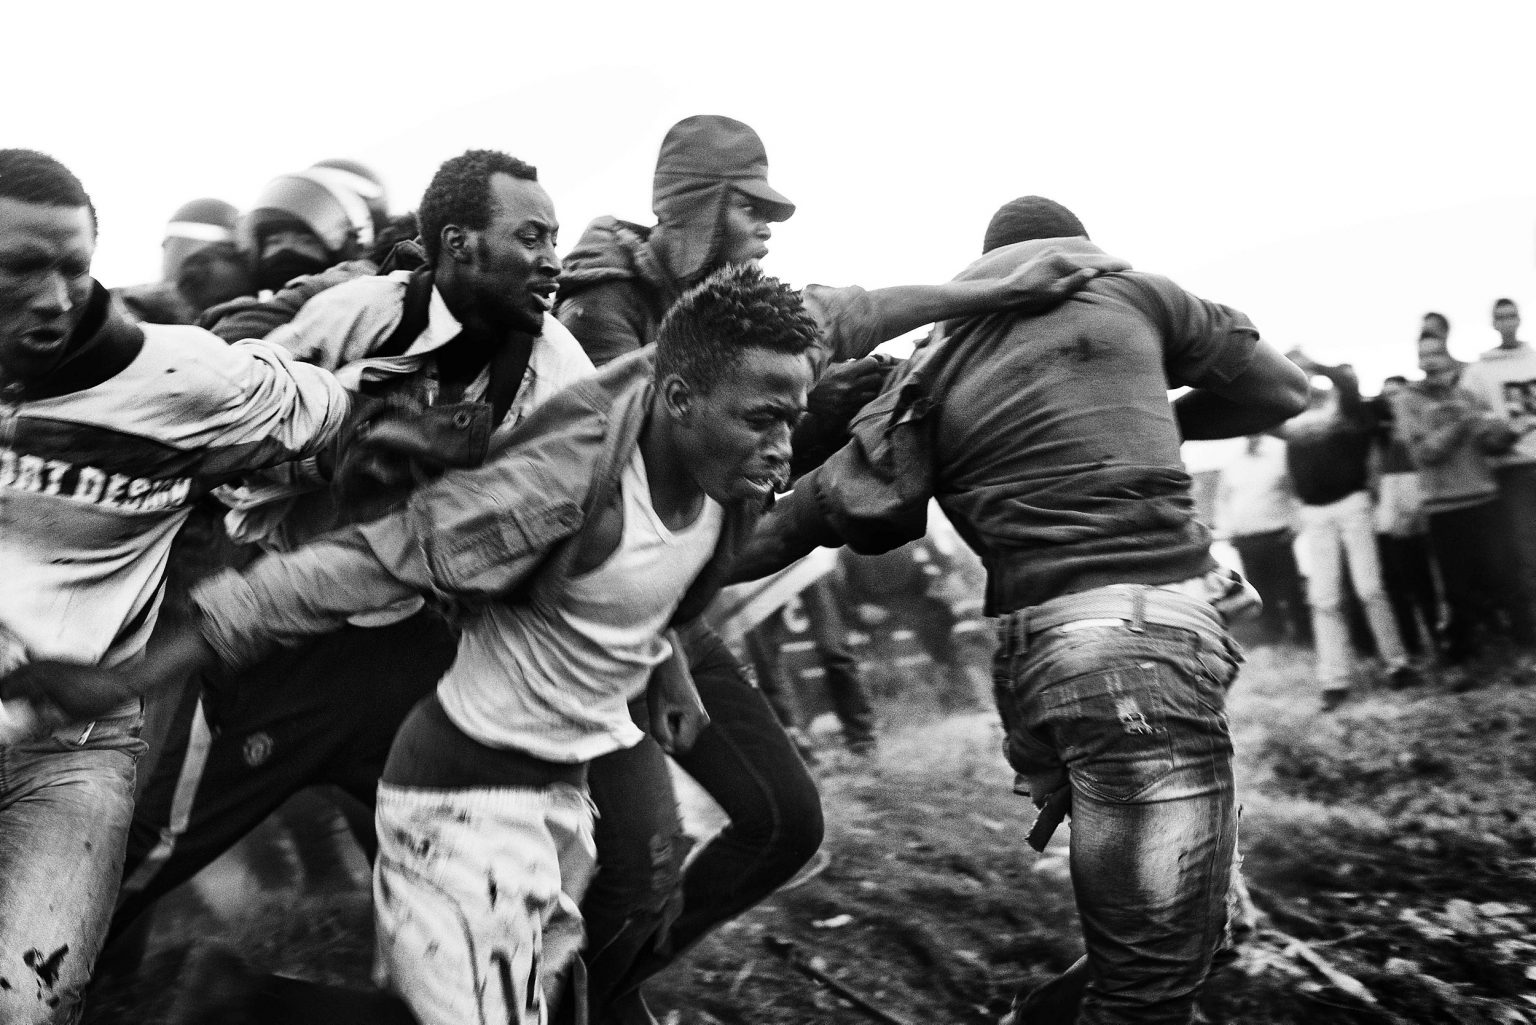 Some 20 sub-Saharan migrants manage to escape from the Police and start running through the fields next to the border. Despite the fact that these migrants had the right to stay in Spain since they touched the Spanish soil, the Guardia Civil and the Police  illegally expatriated most of those who crossed the fence.  Melilla, Spain, 2014